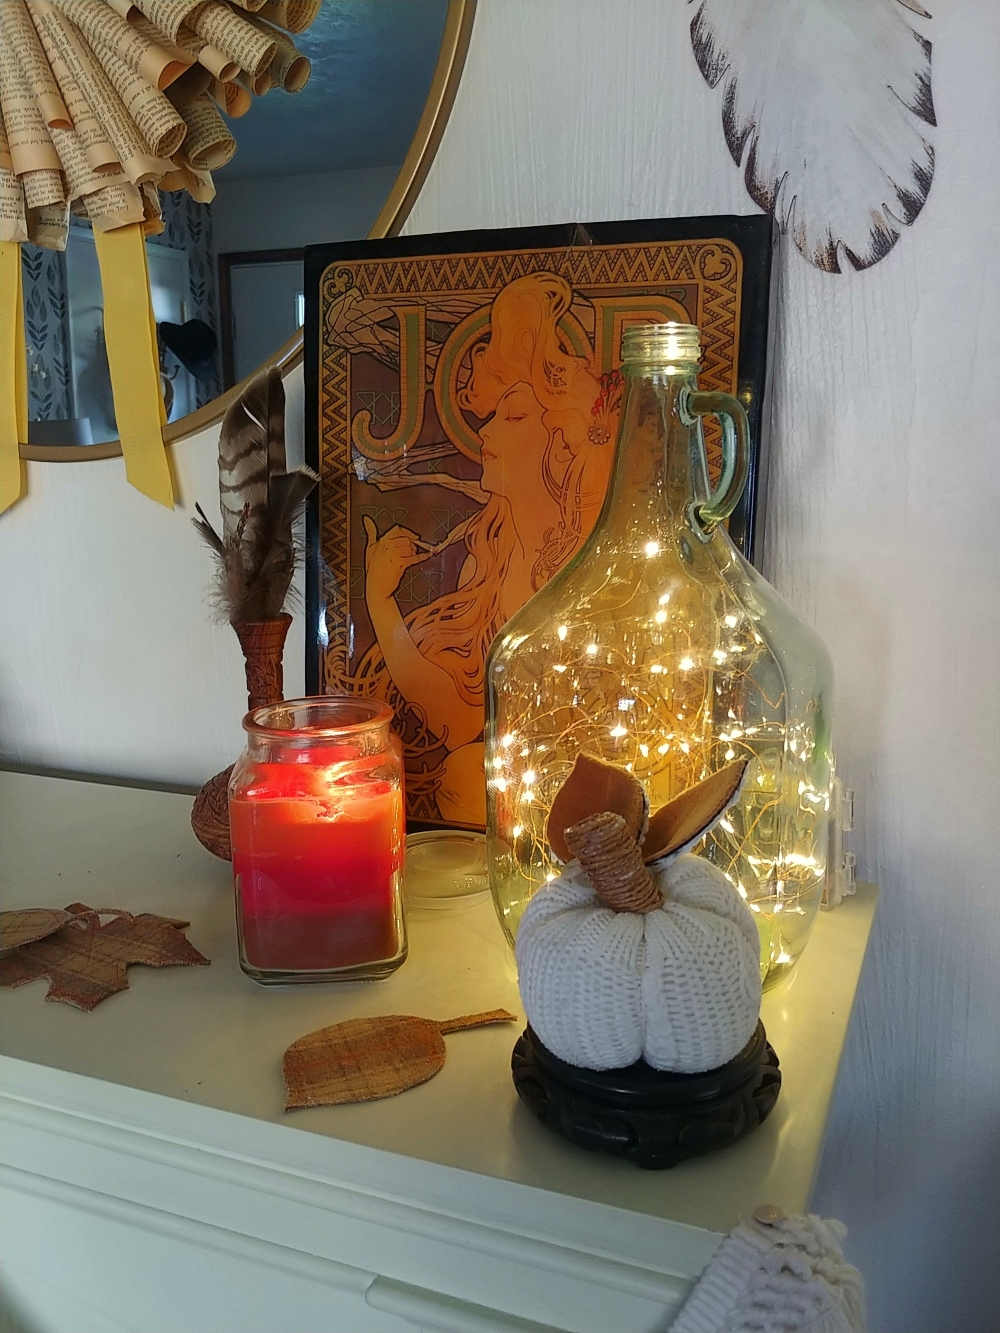 Fall Decor - Working With Vignettes